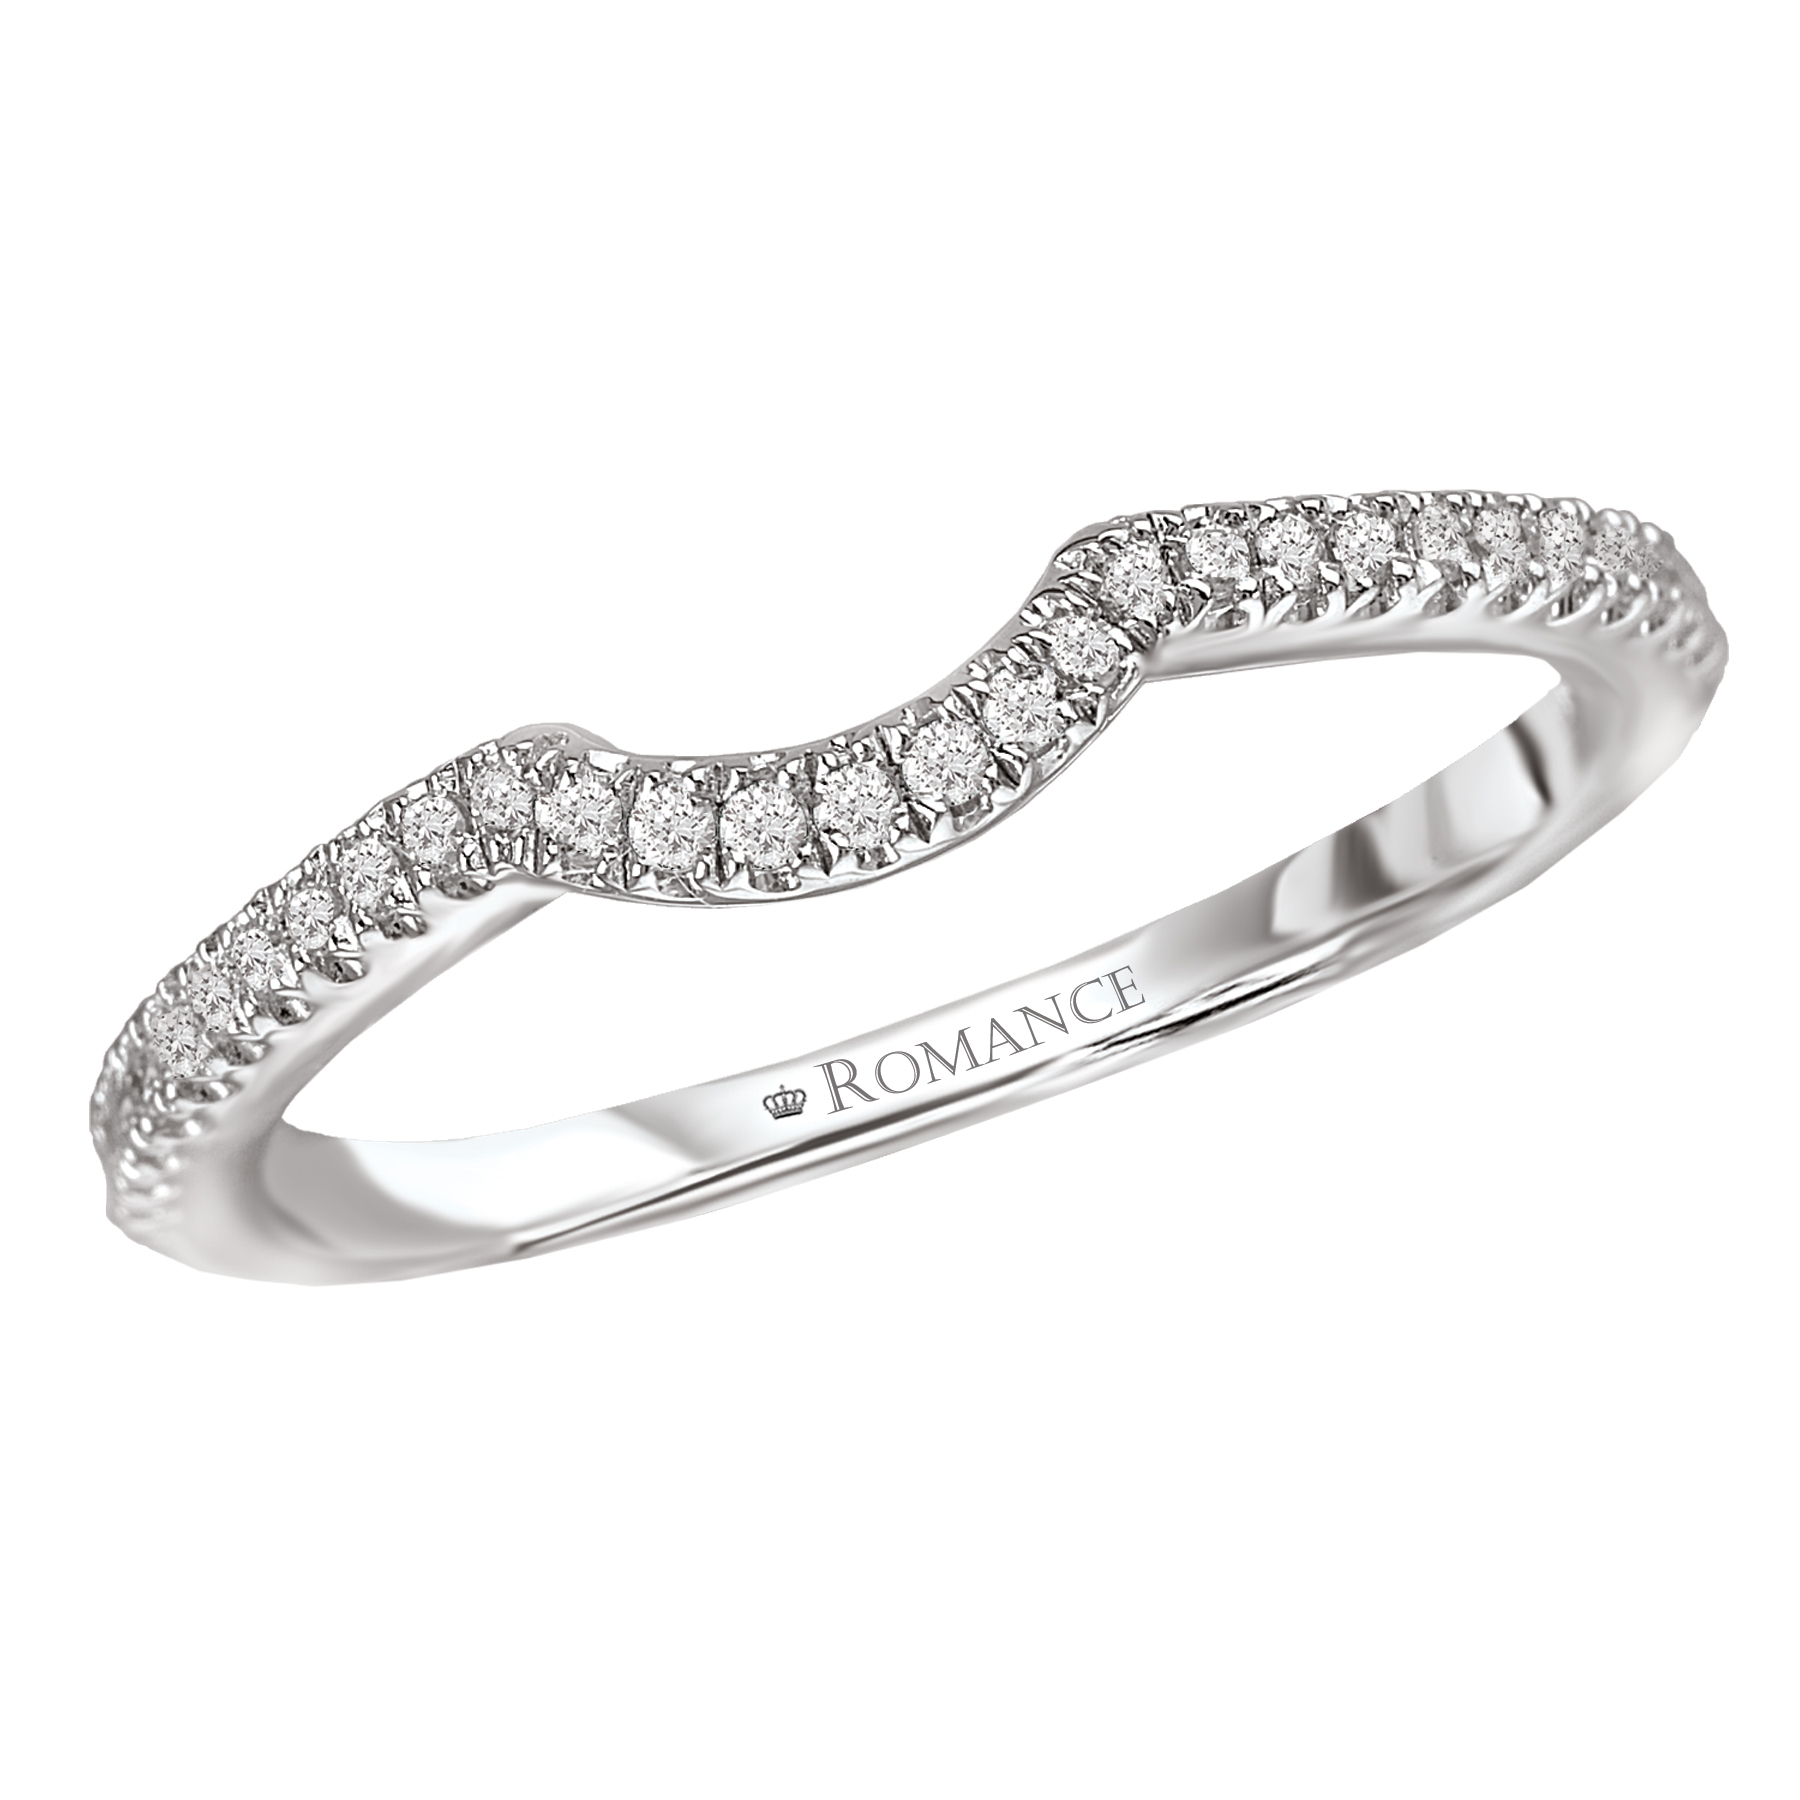 Romance Wedding Bands 117274-W product image